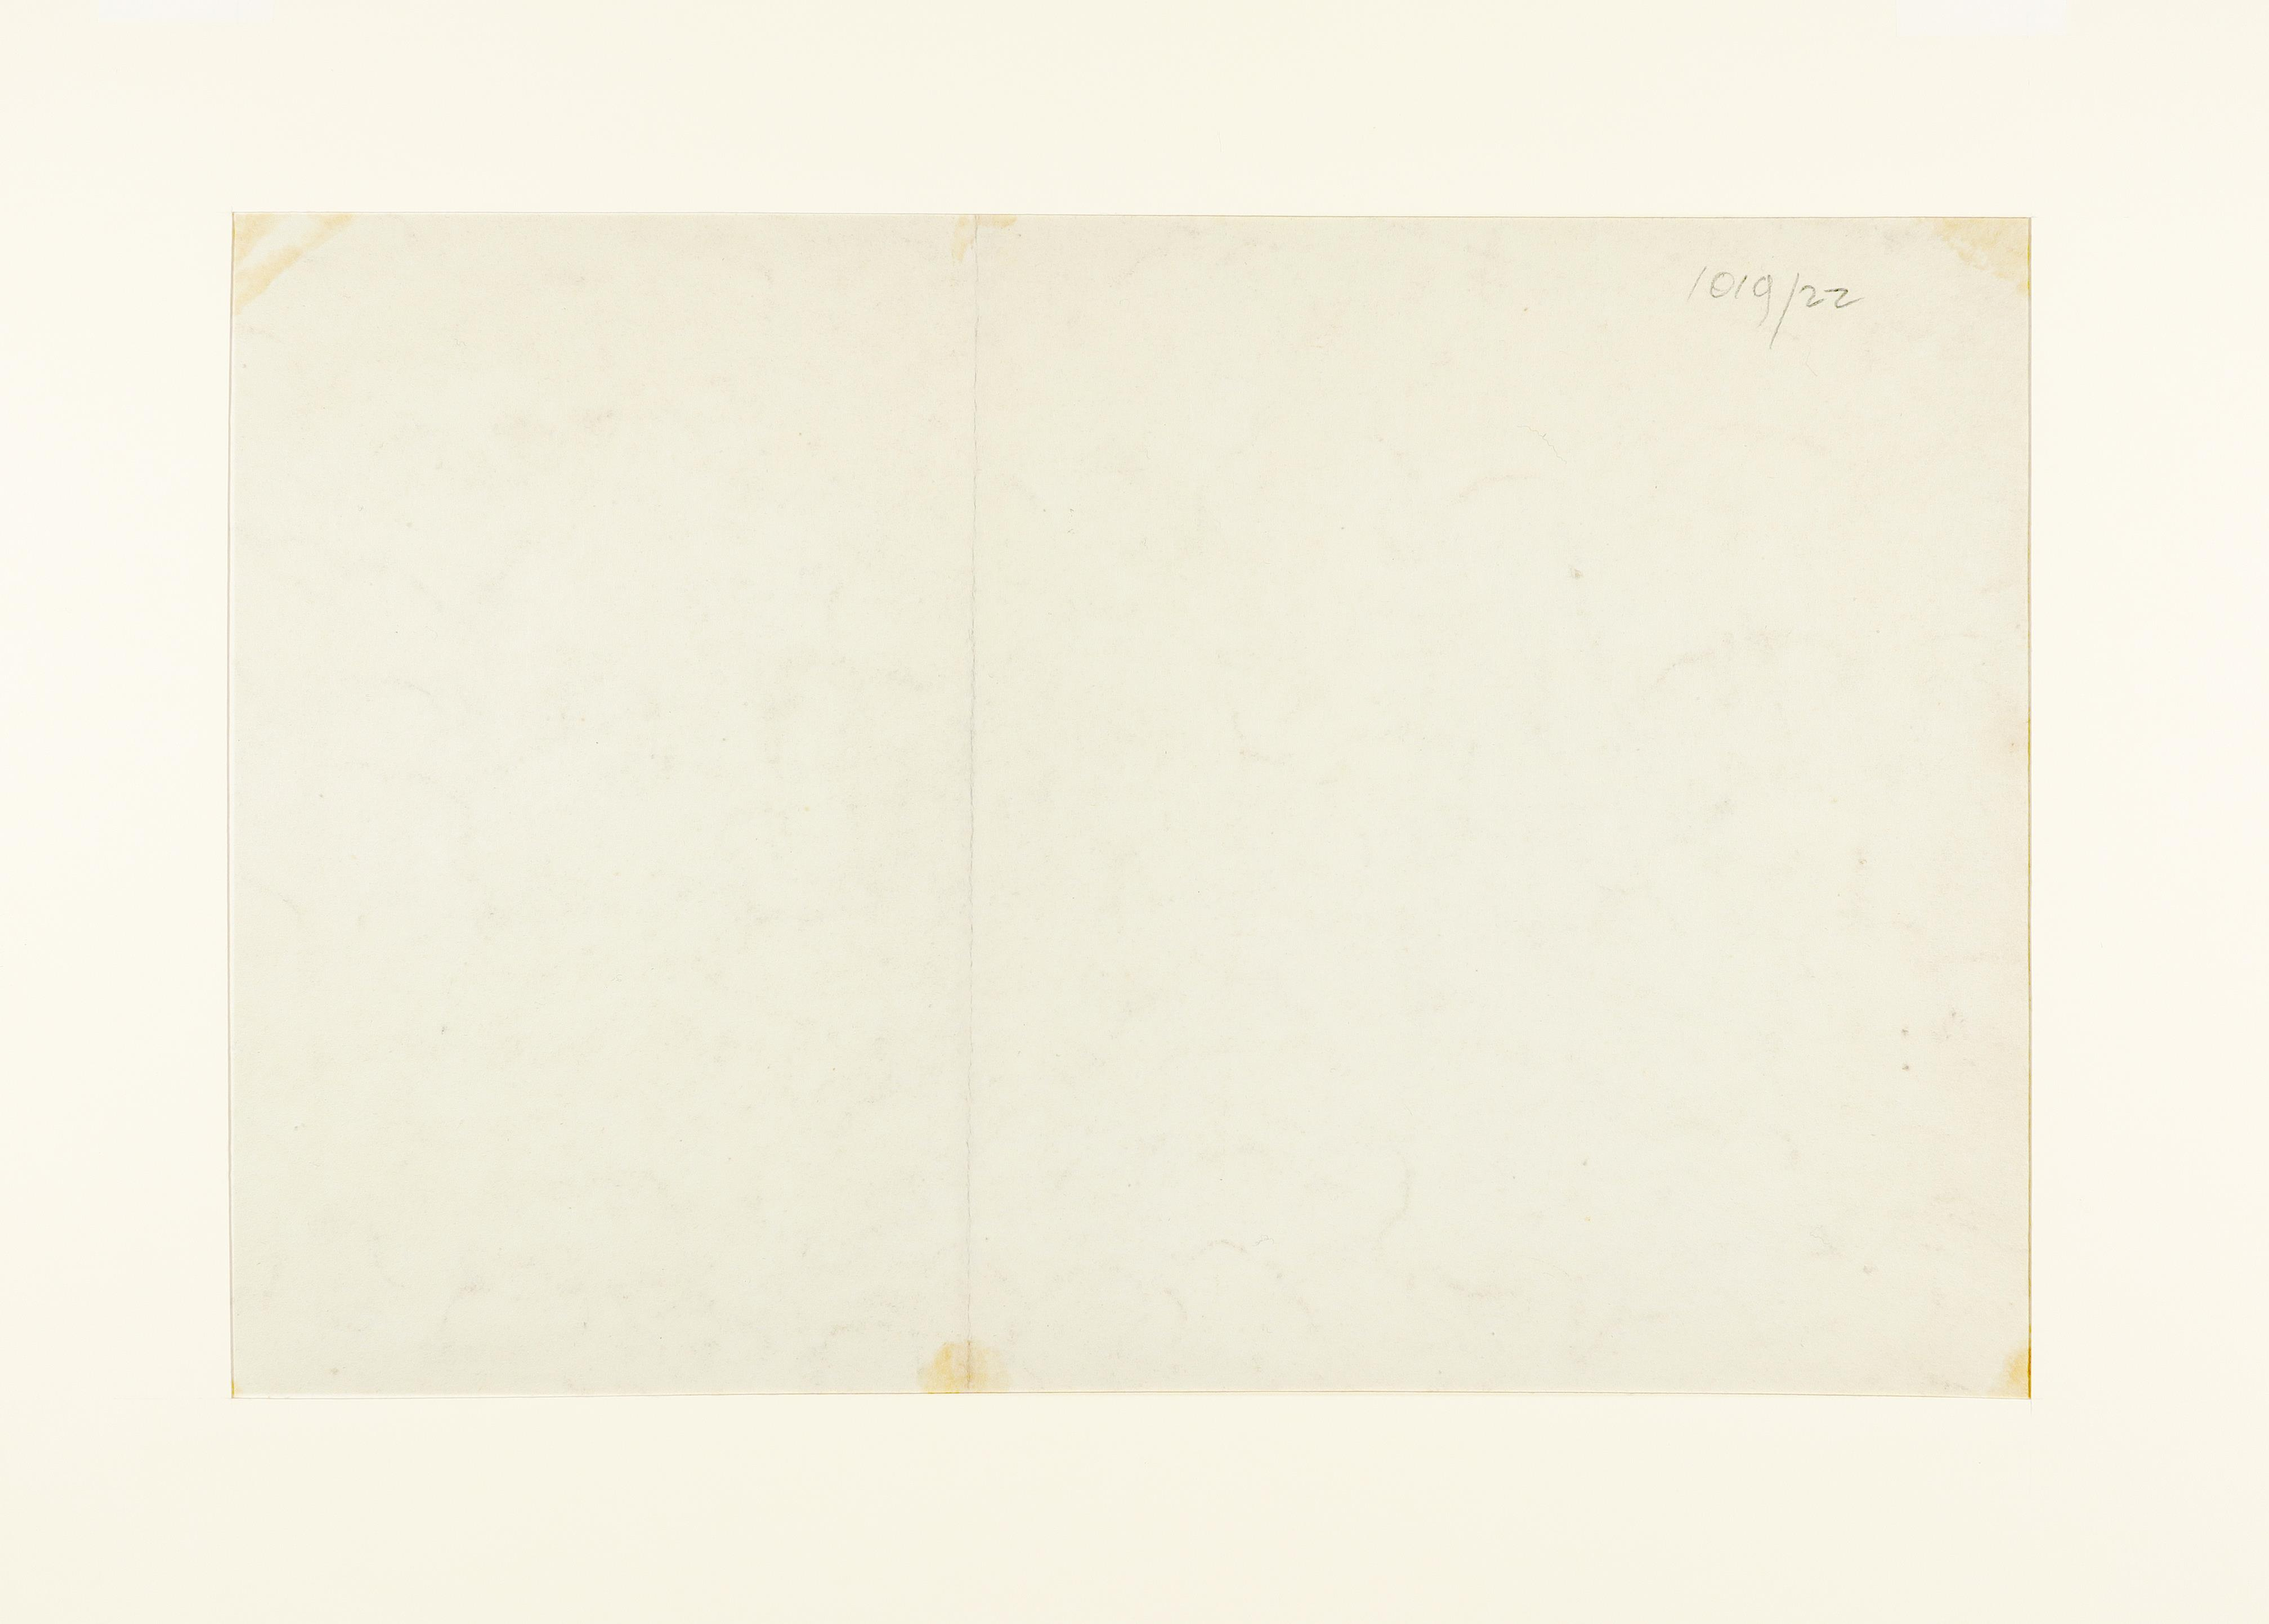 Joshua Cristall (c.1767-1847) Sketch of figures before a cottage Pencil 30 x 44cm; 11¾ x 17¾in - Image 3 of 3